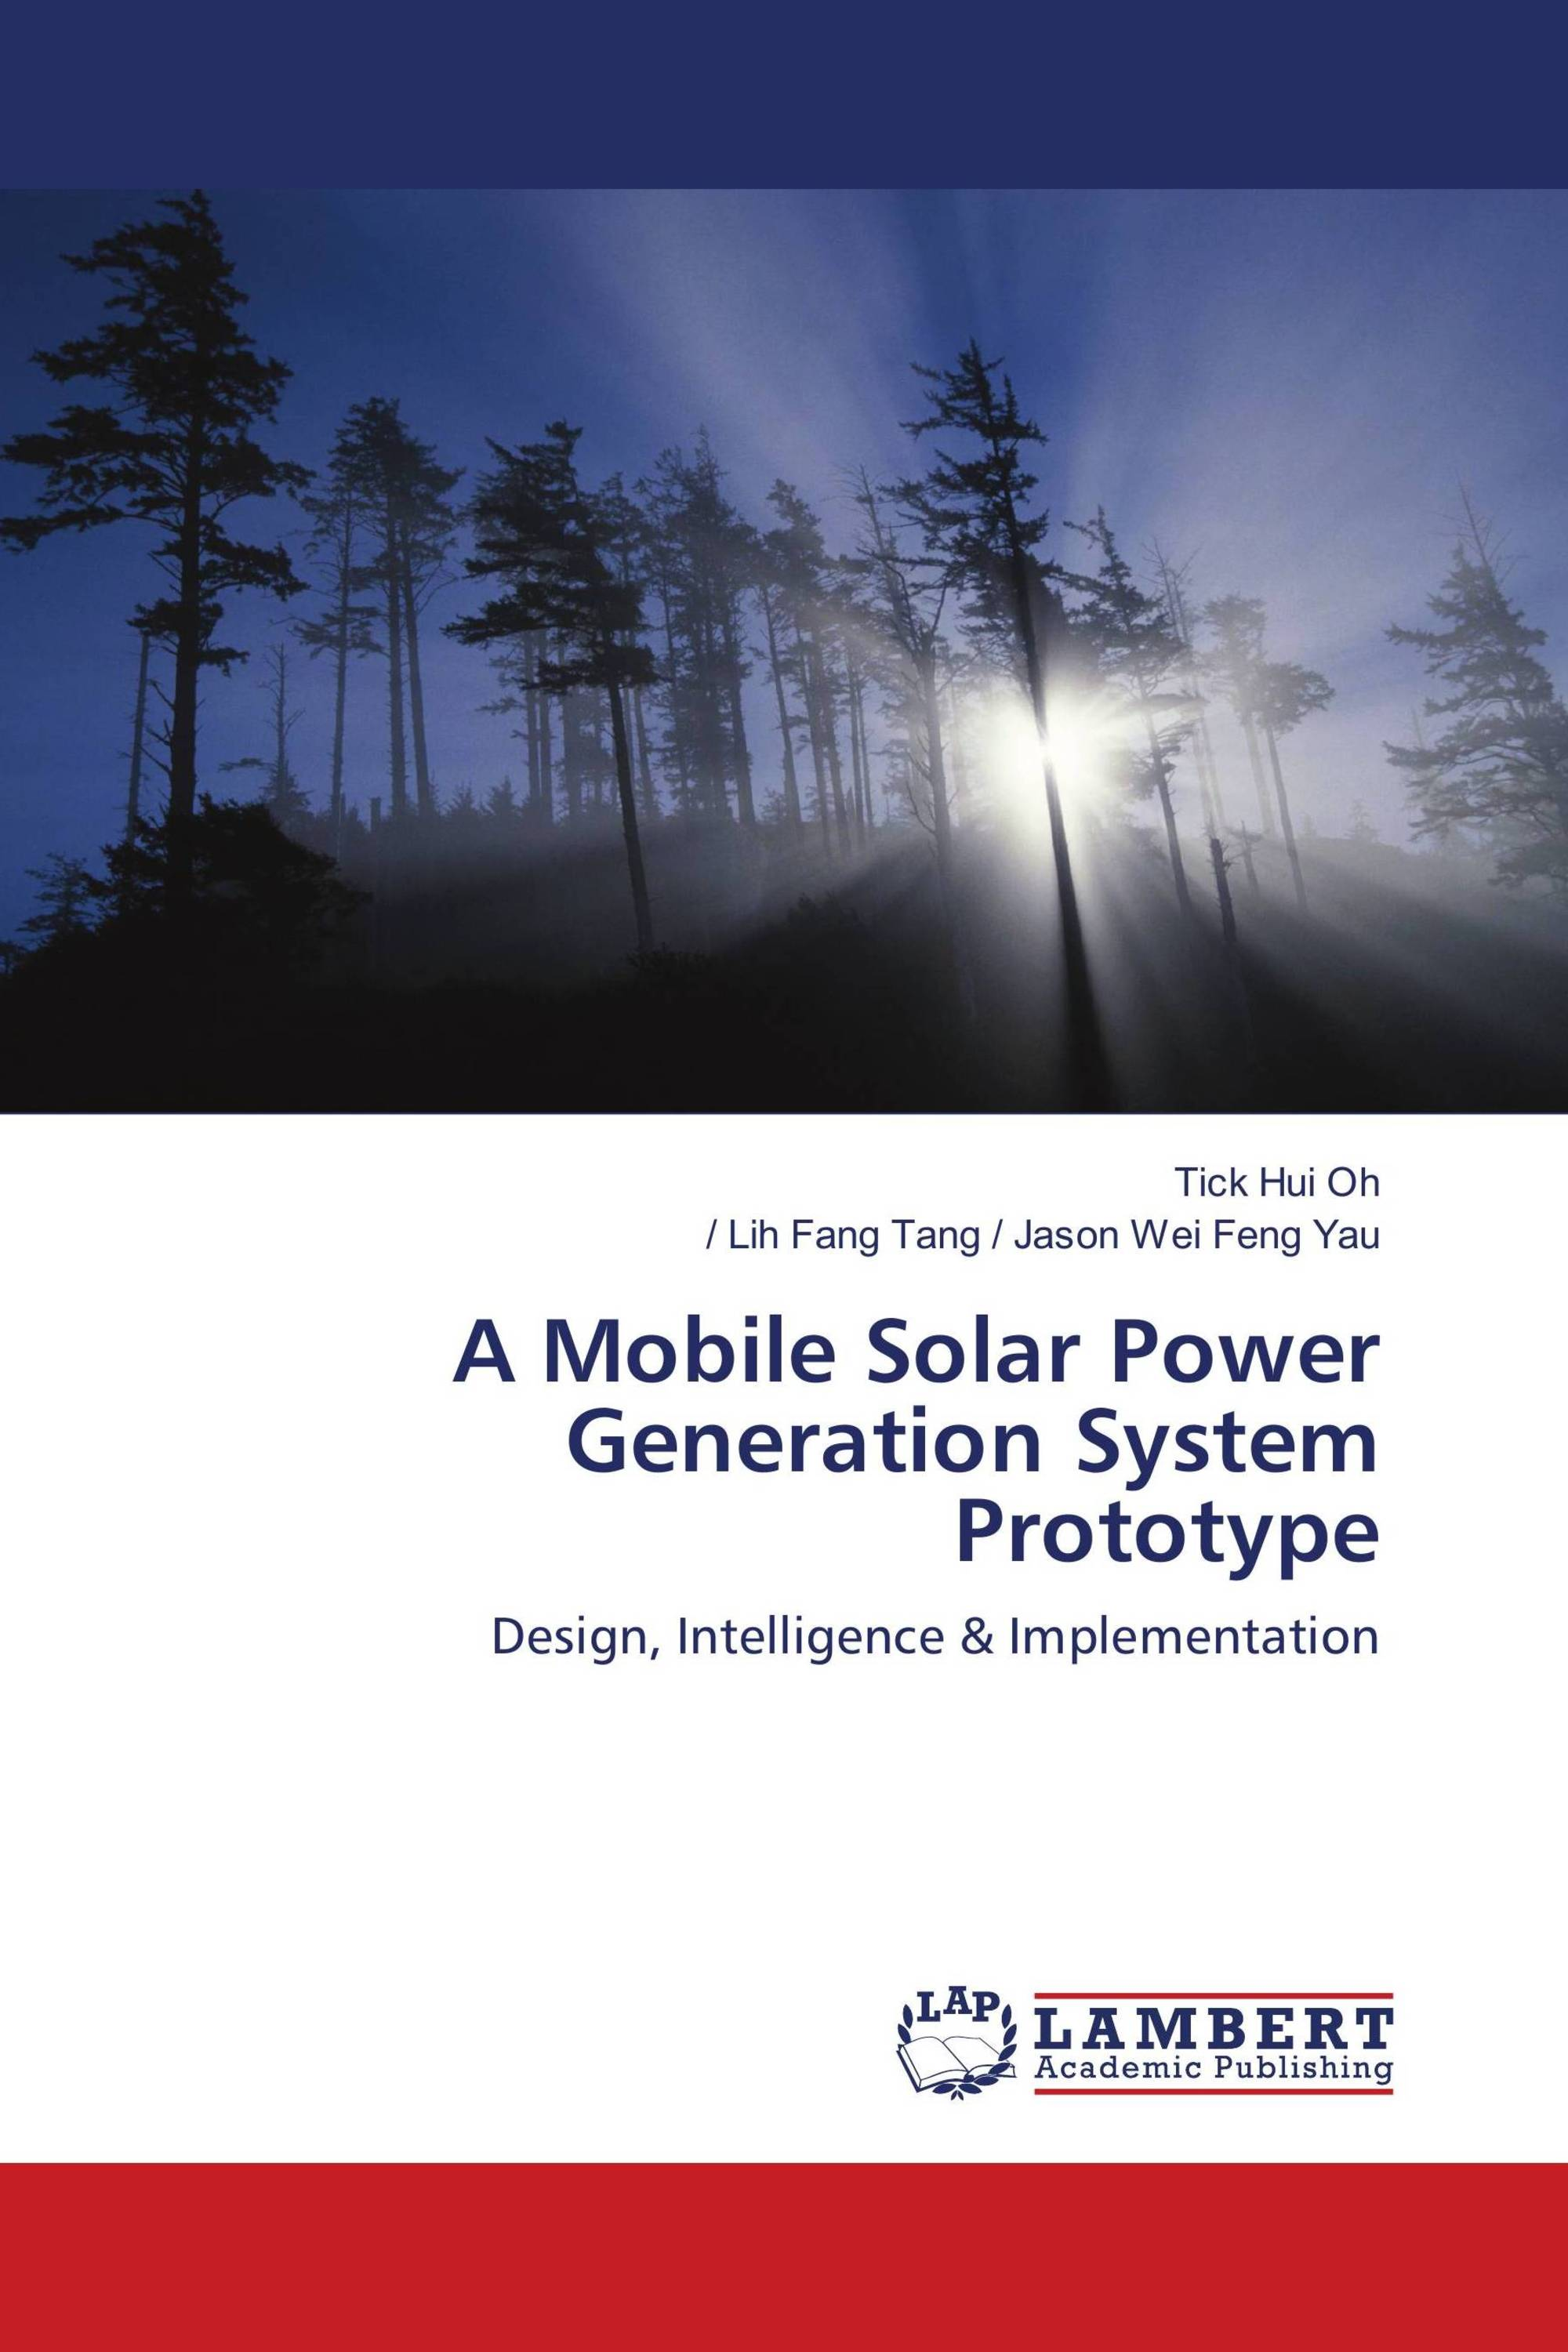 A Mobile Solar Power Generation System Prototype